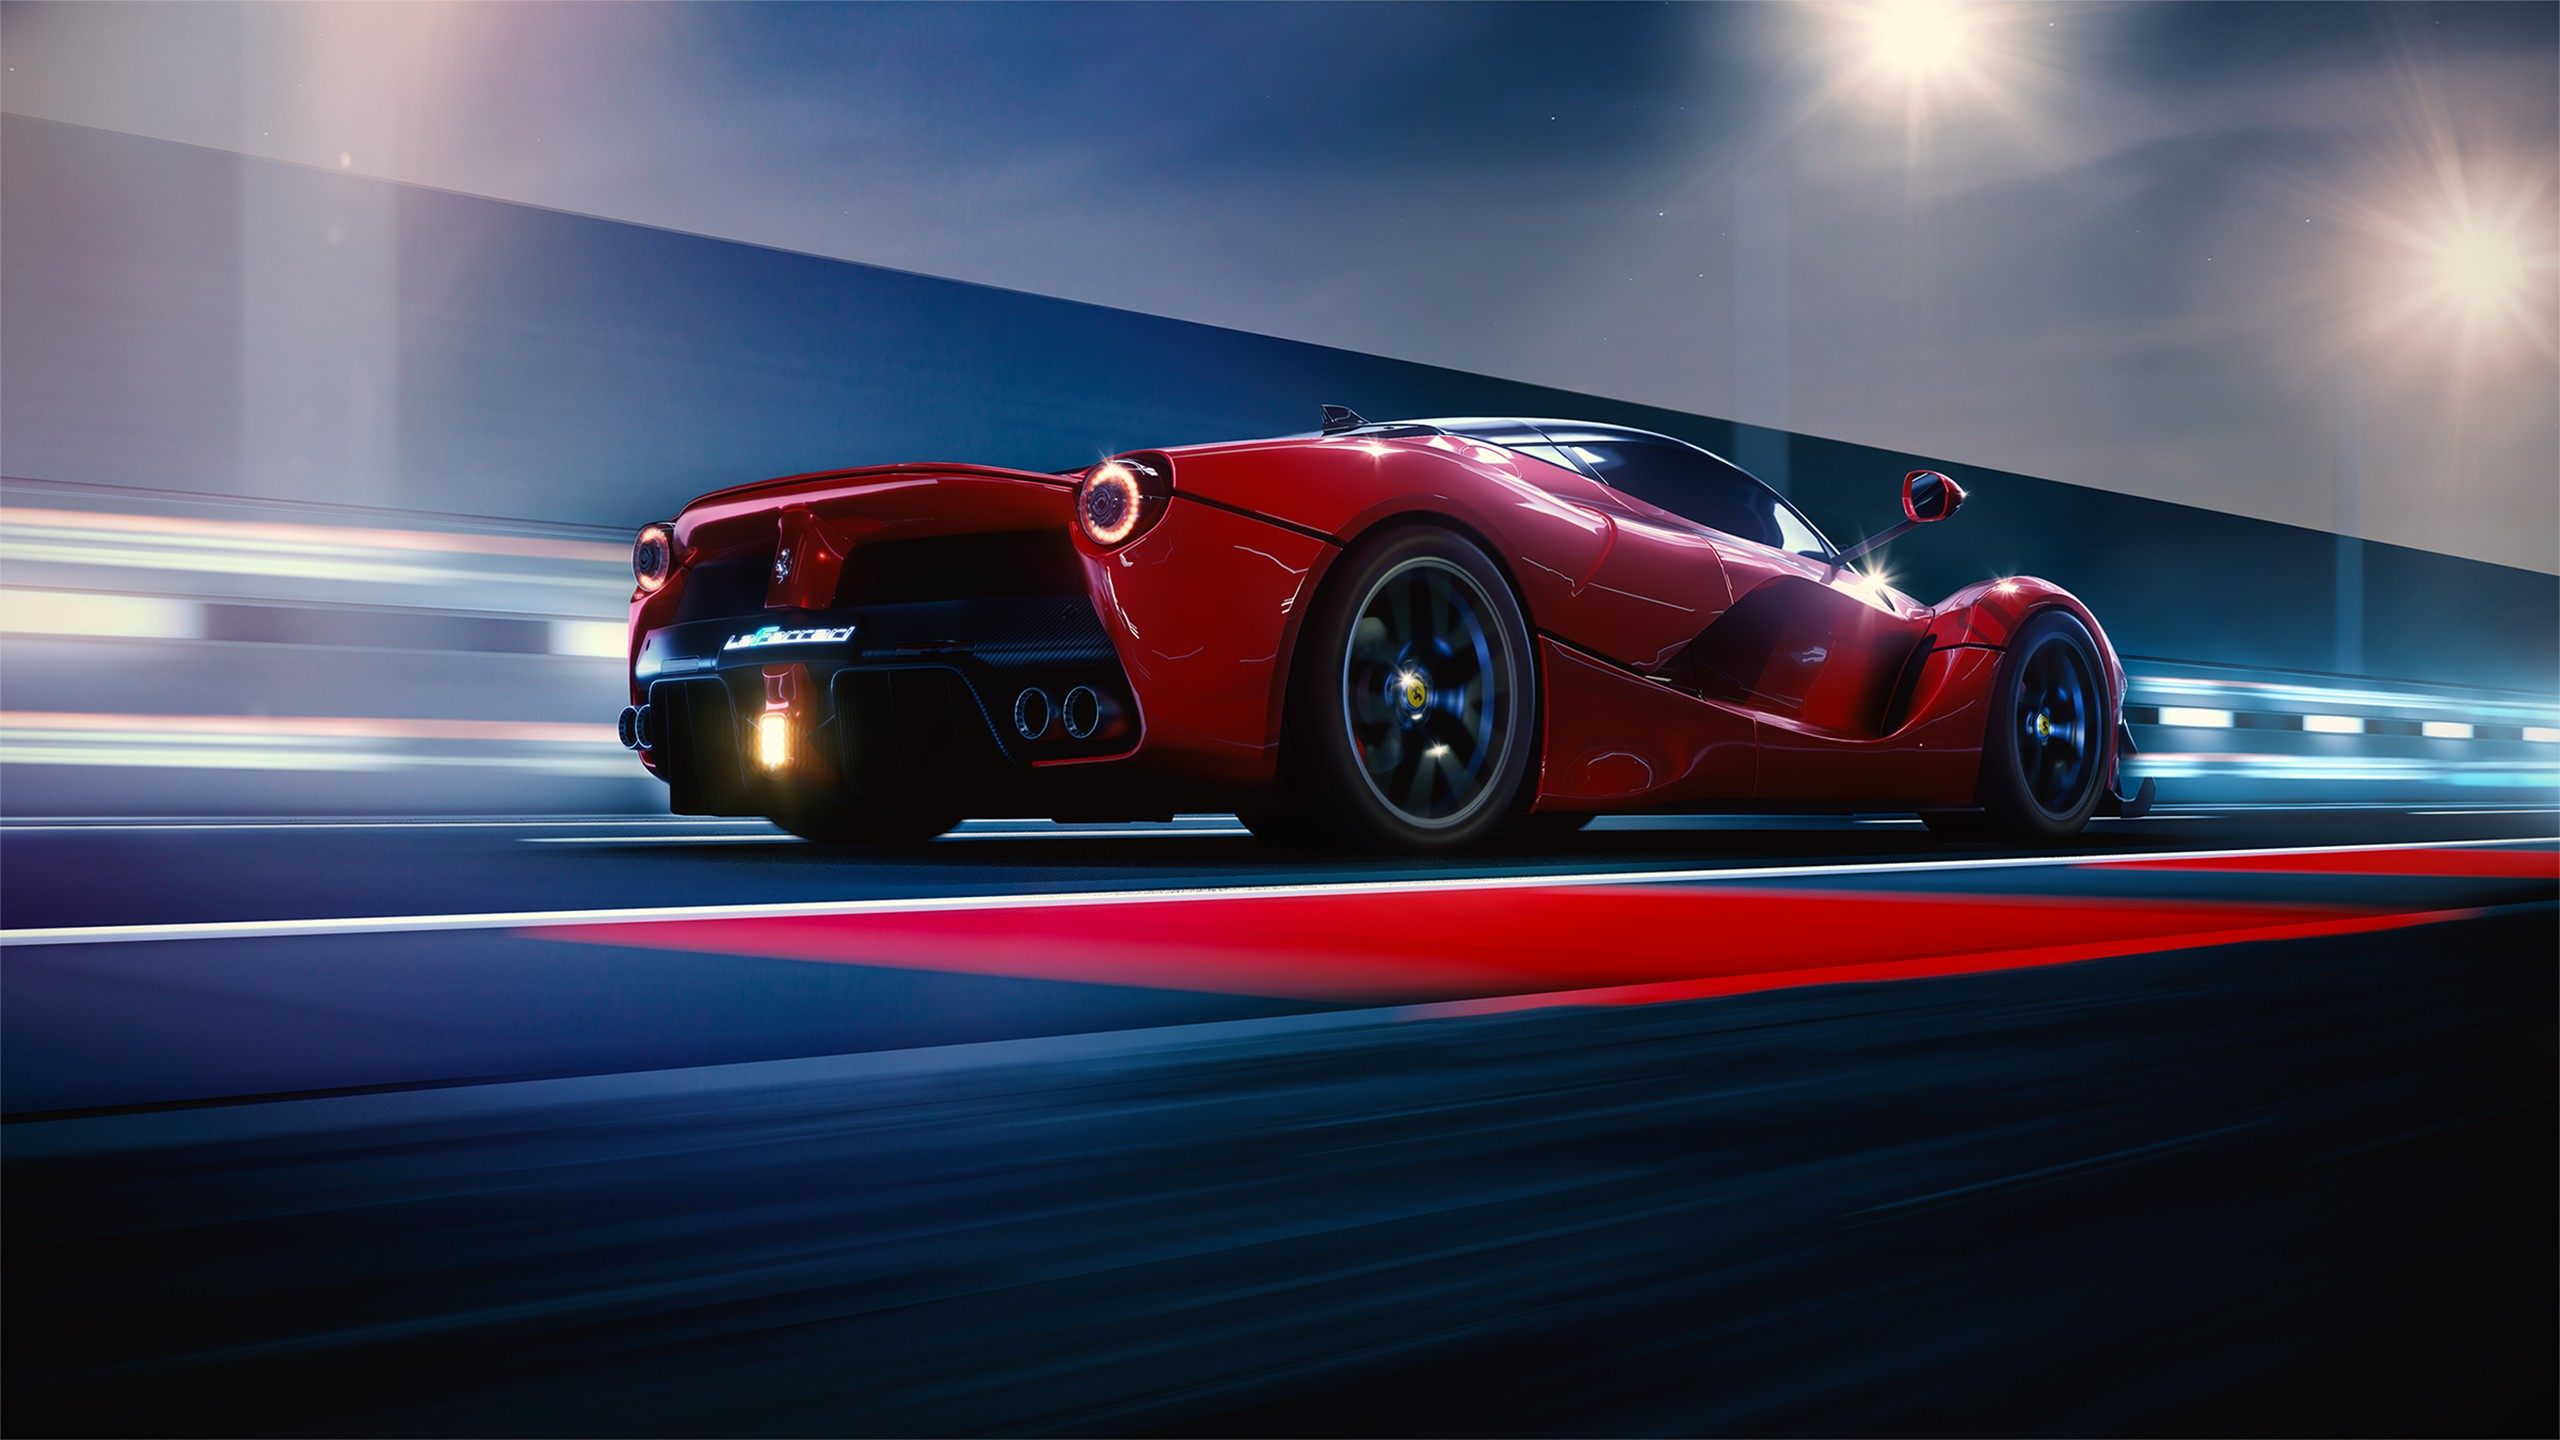 Windows 7 Wallpaper Hd Laferrari Wallpapers Hd Wallpapers Id 26517